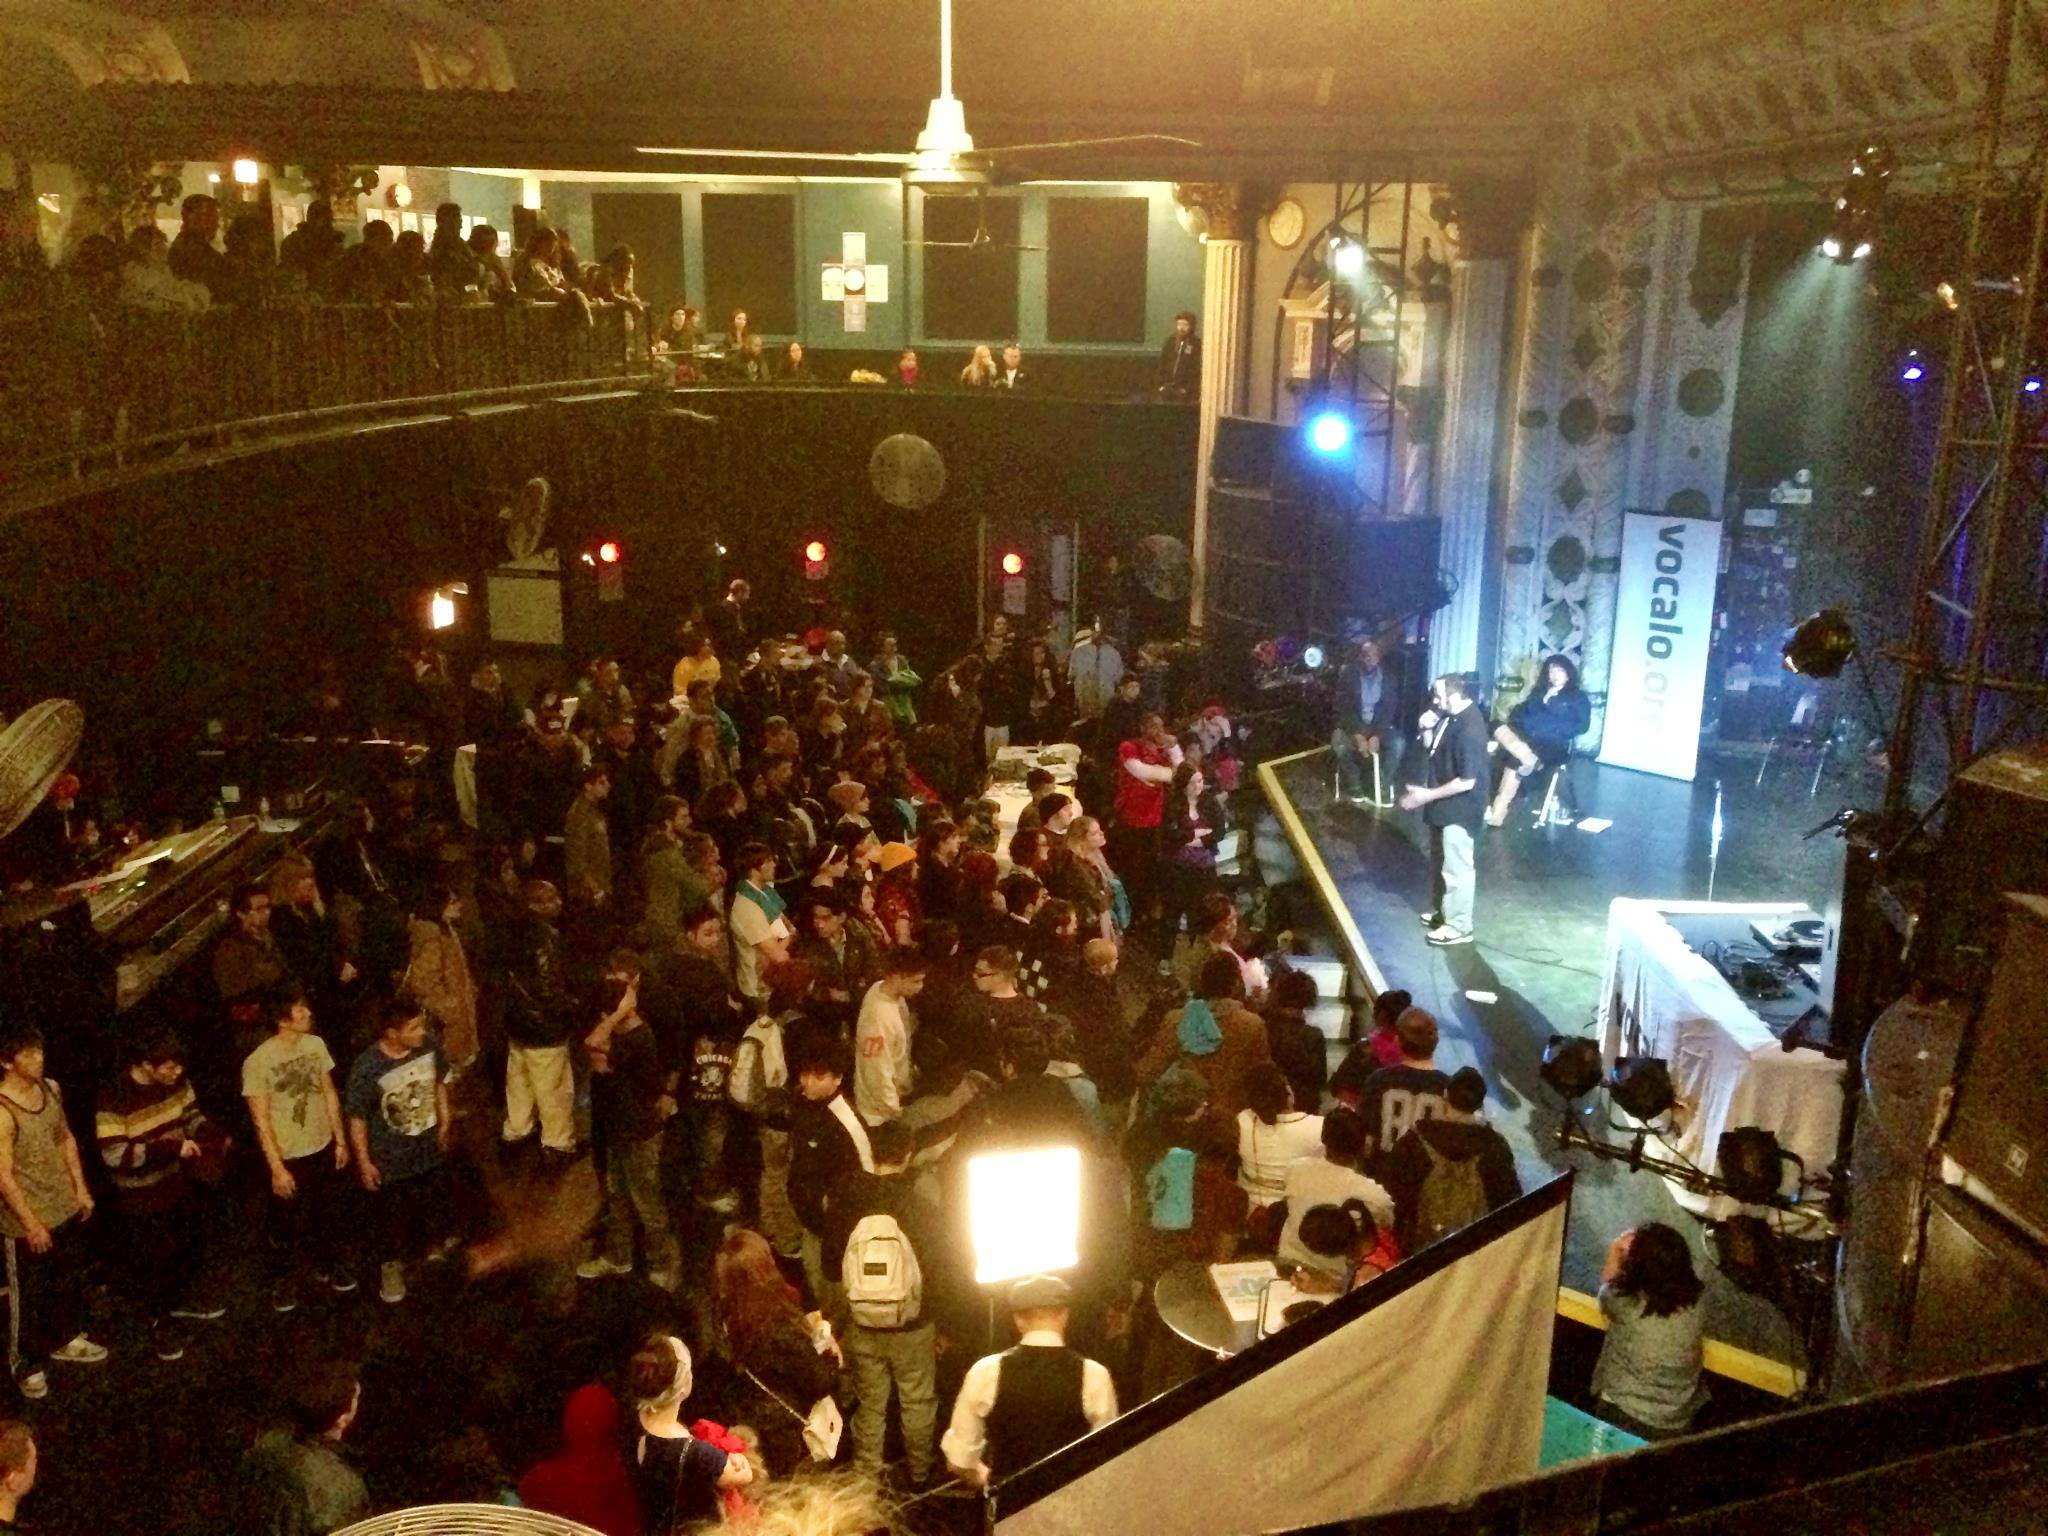 Winter Block Party for Chicago's Hip Hop Arts - (seven annual events)Average attendance: 2,500